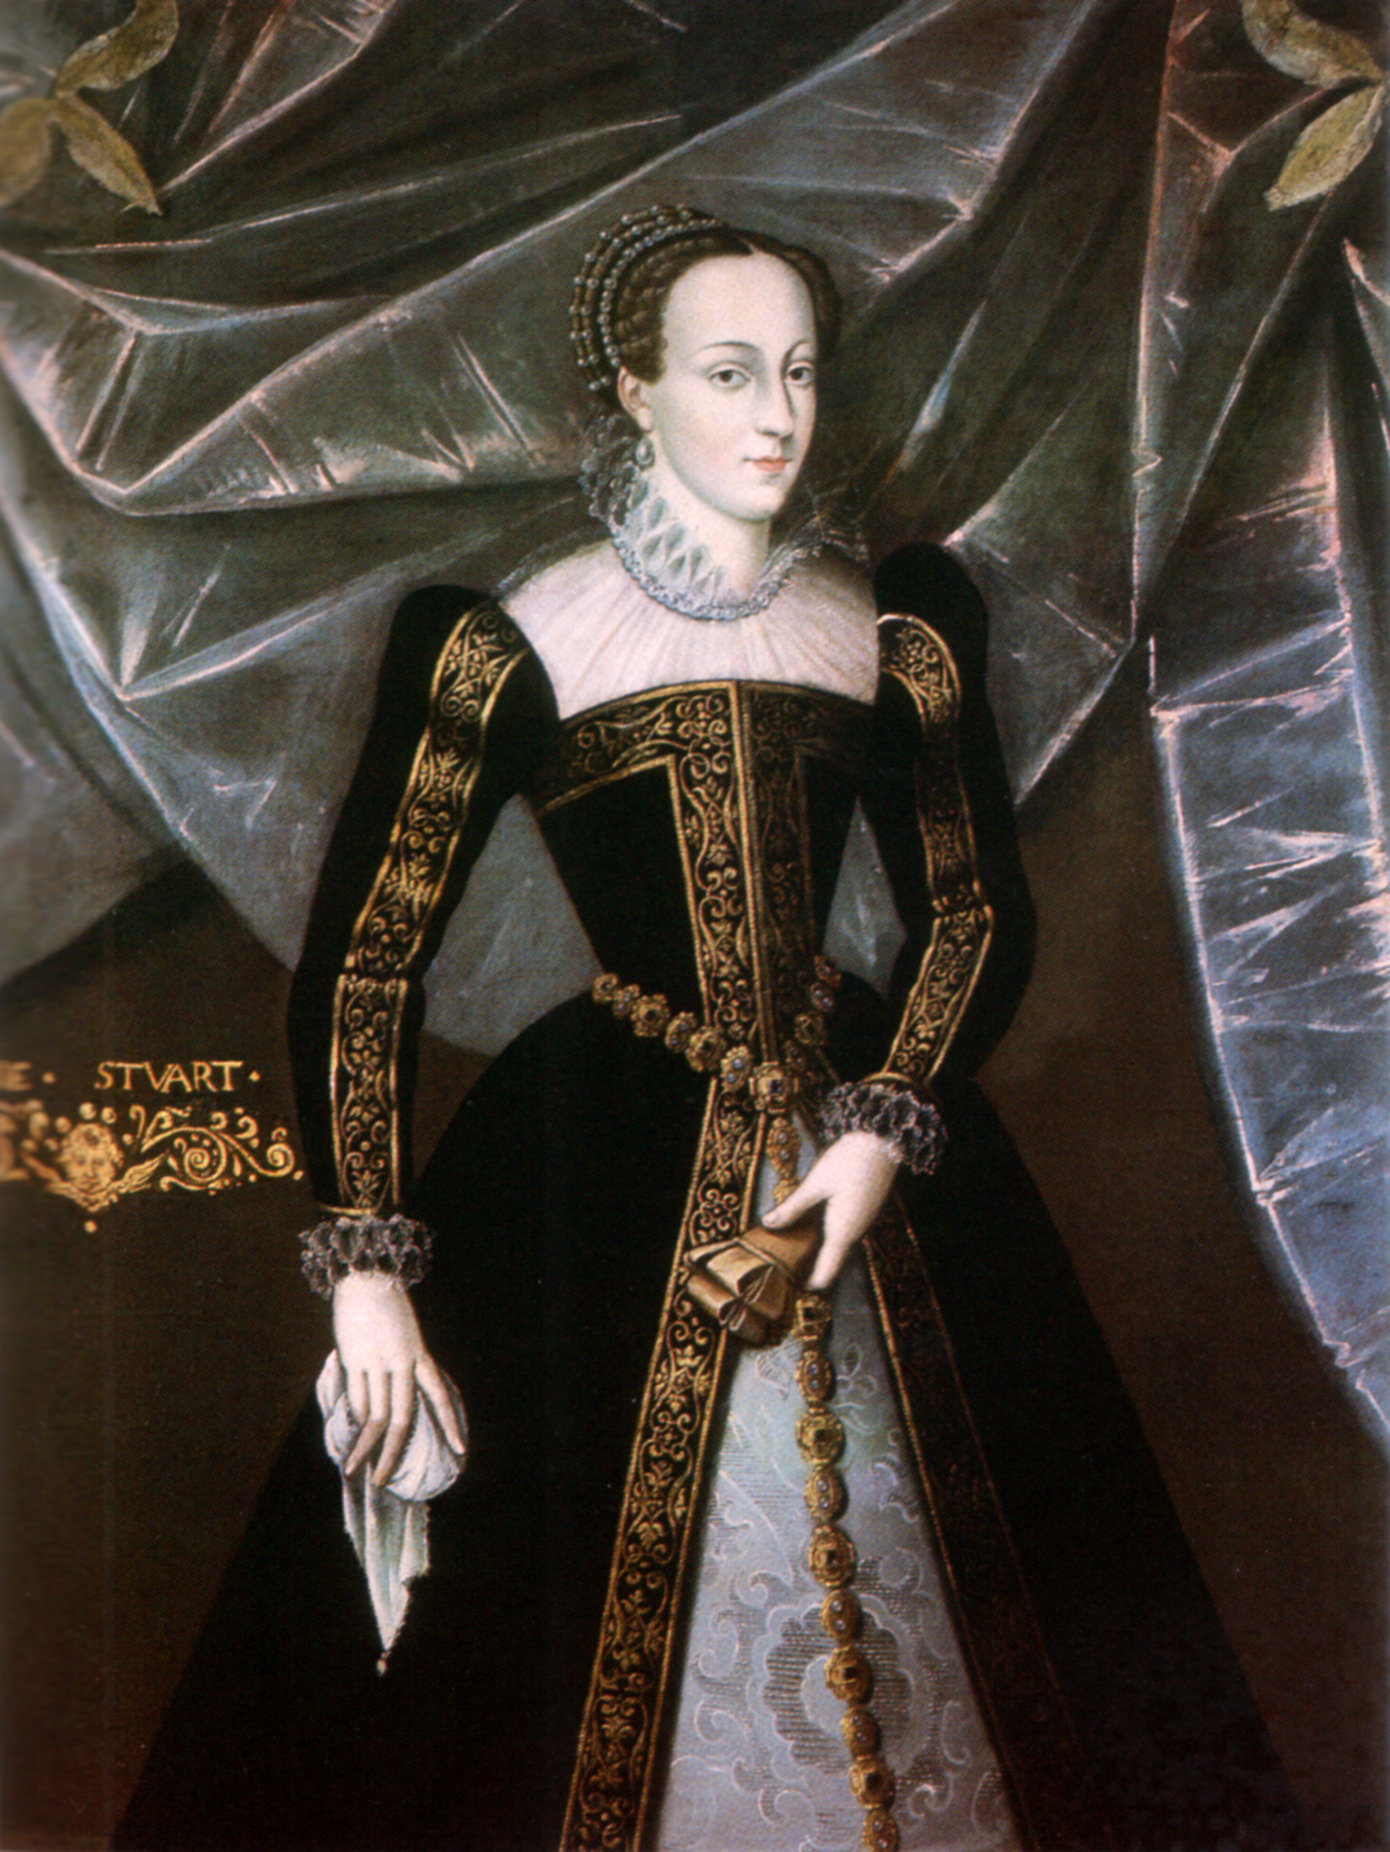 File:Mary Queen of Scots Blairs Museum.jpg - Wikipedia, the free ...